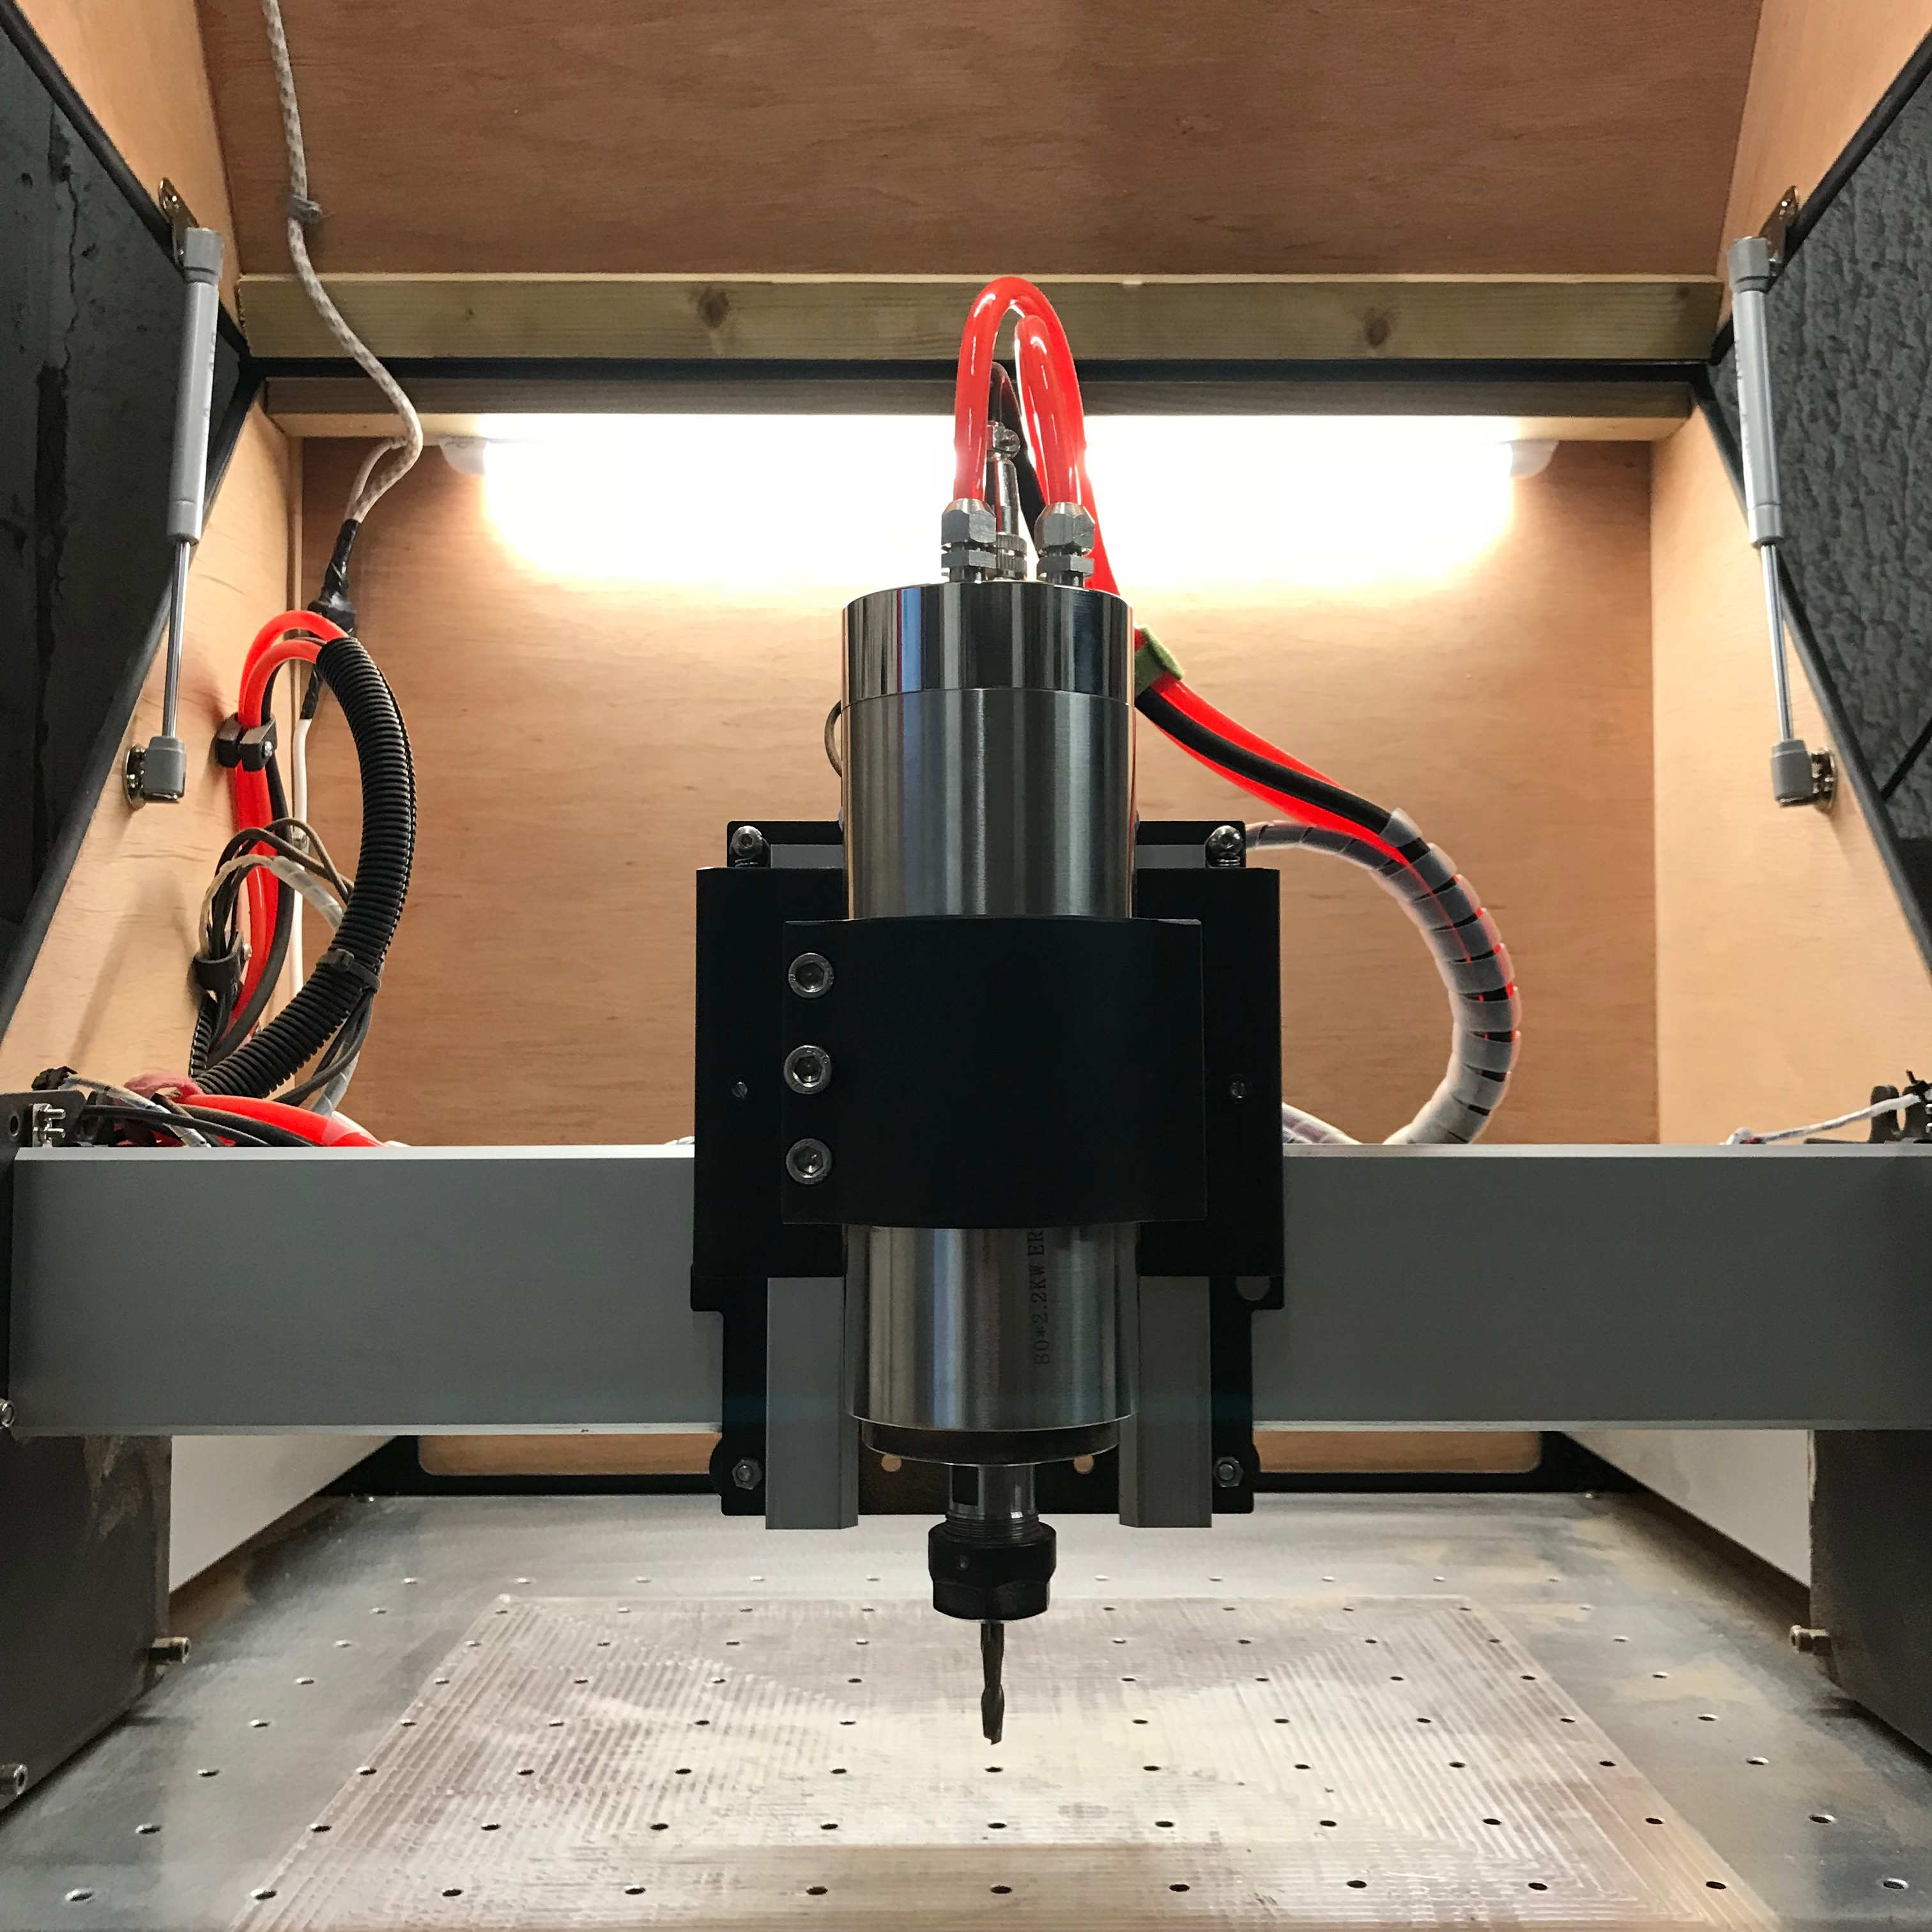 Instructions For Fitting A 2 2kw  Or Other Power Spindle